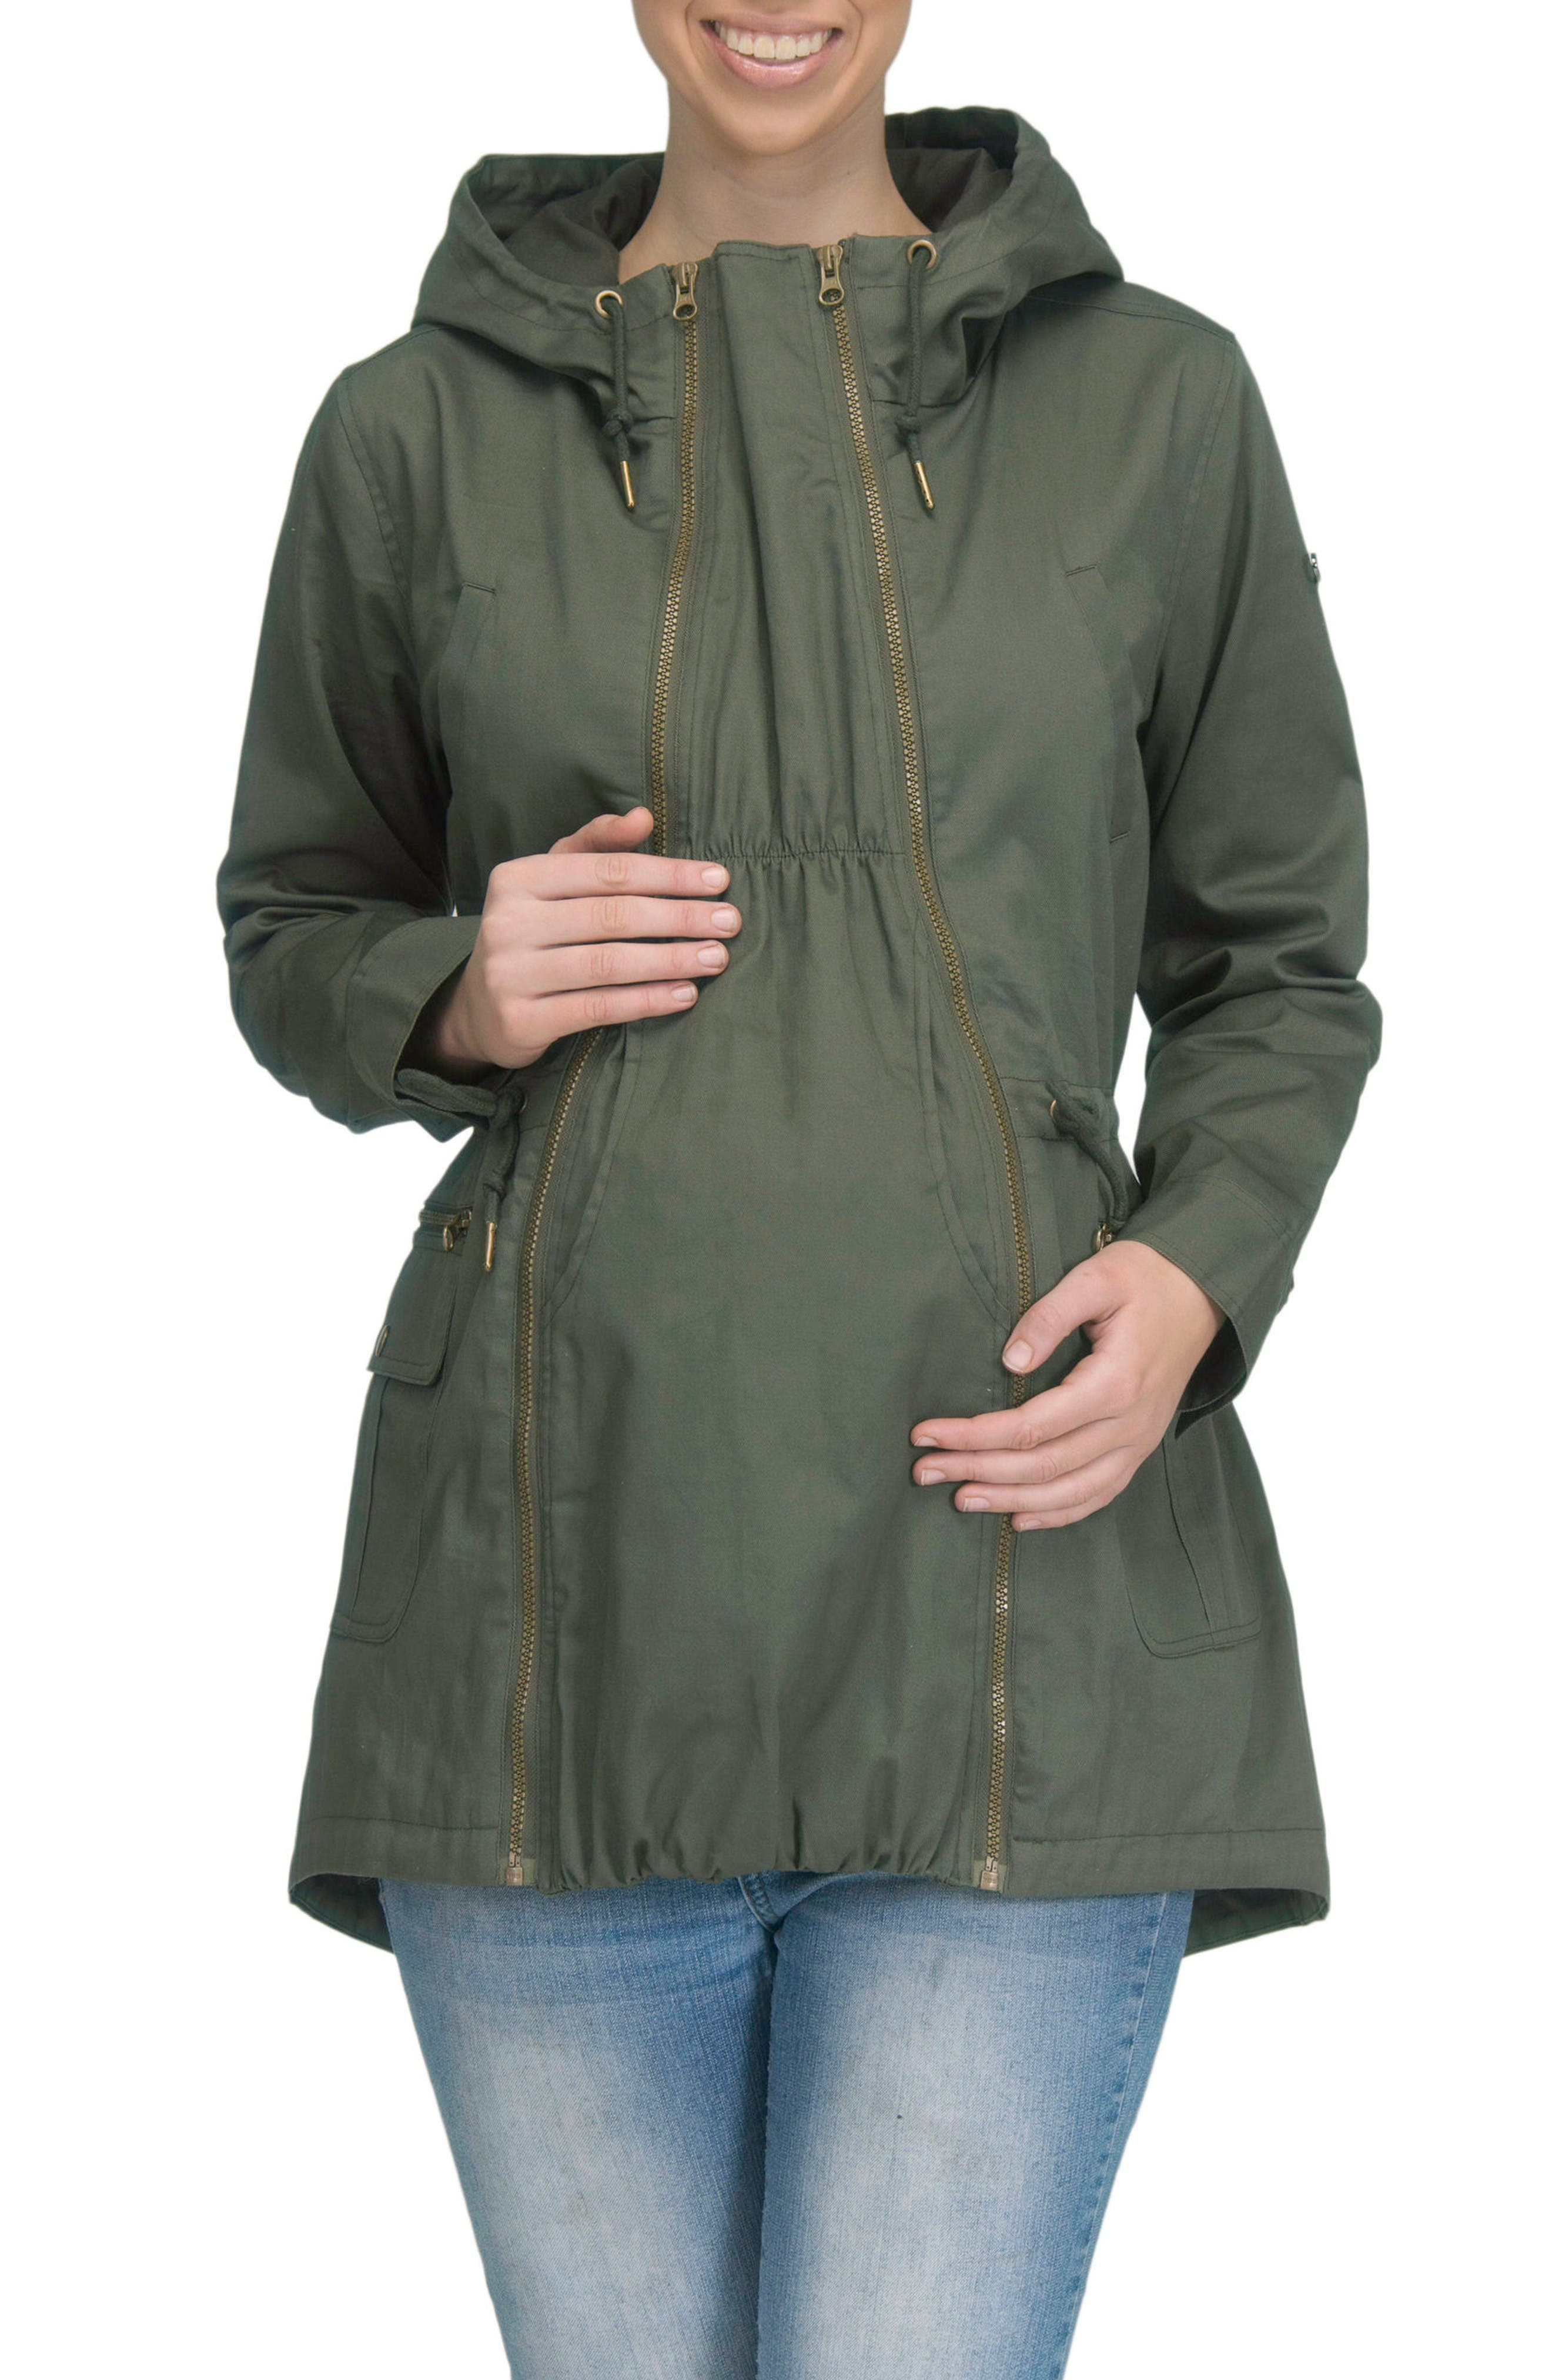 Modern Eternity Convertible Military Maternity Jacket